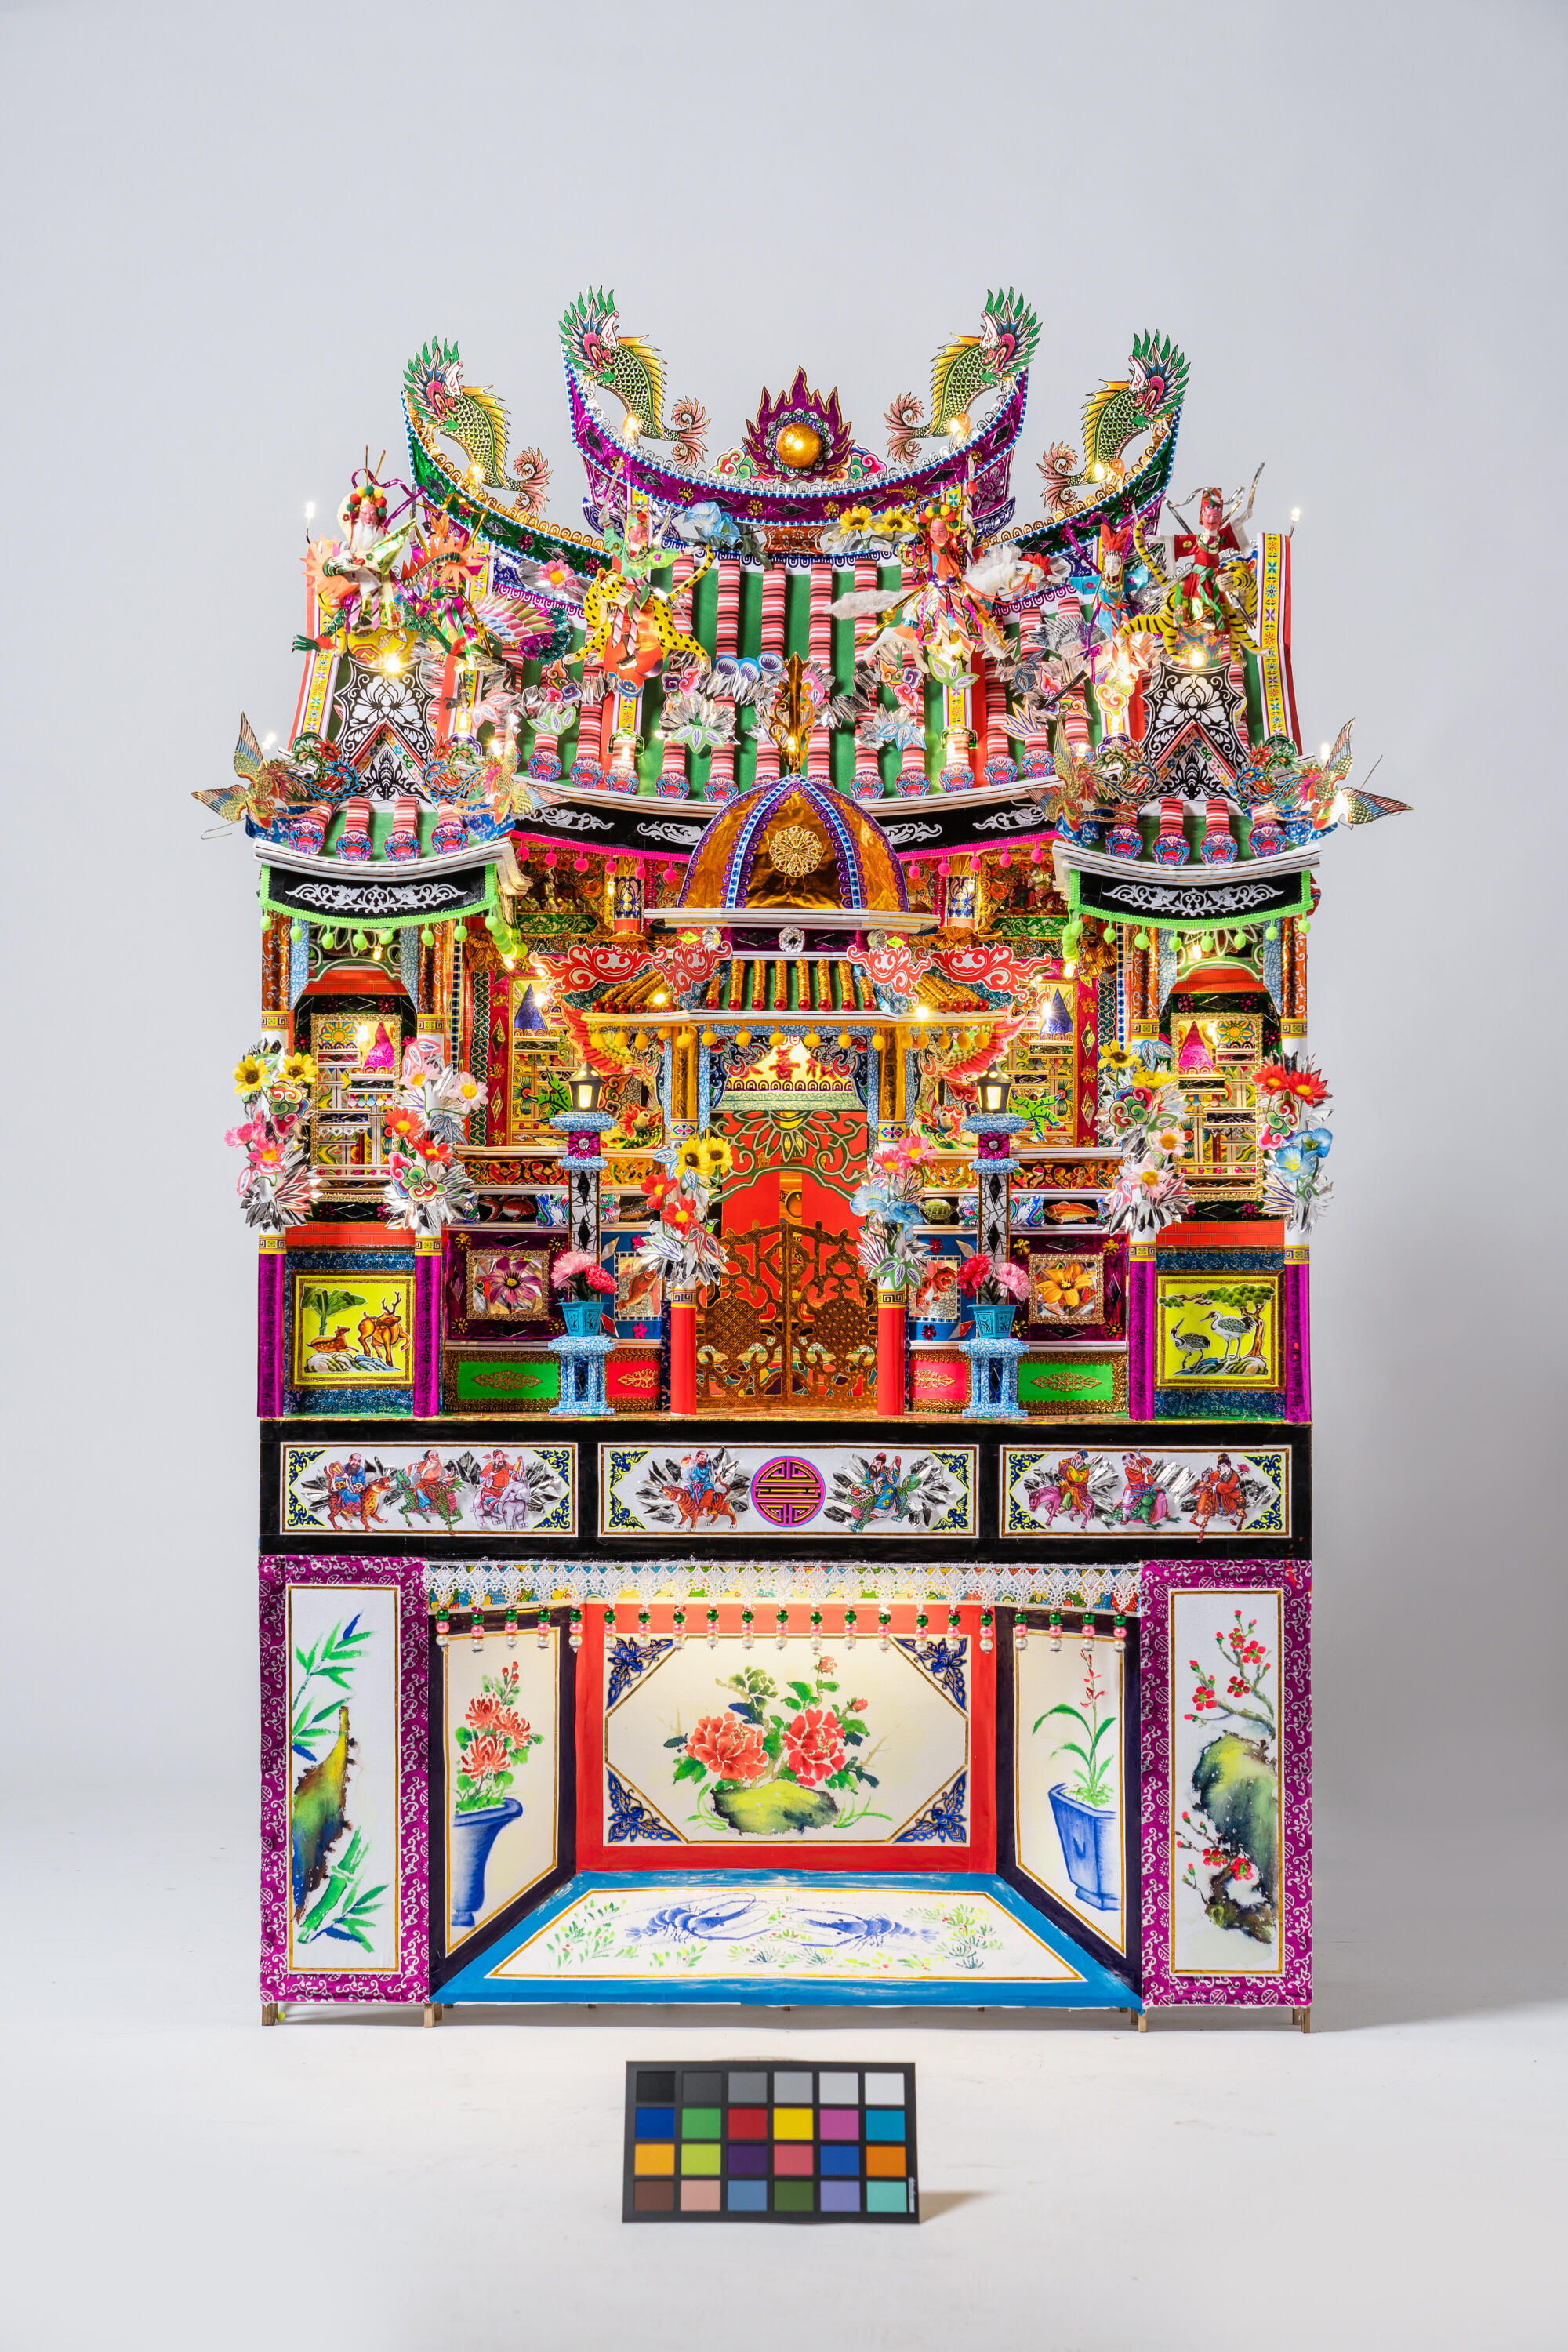 This house is made of paper and bamboo, with LED lights. It is a funeral offering, meant to accompany the defunt into the afterlife. The offering is burned after the funeral.